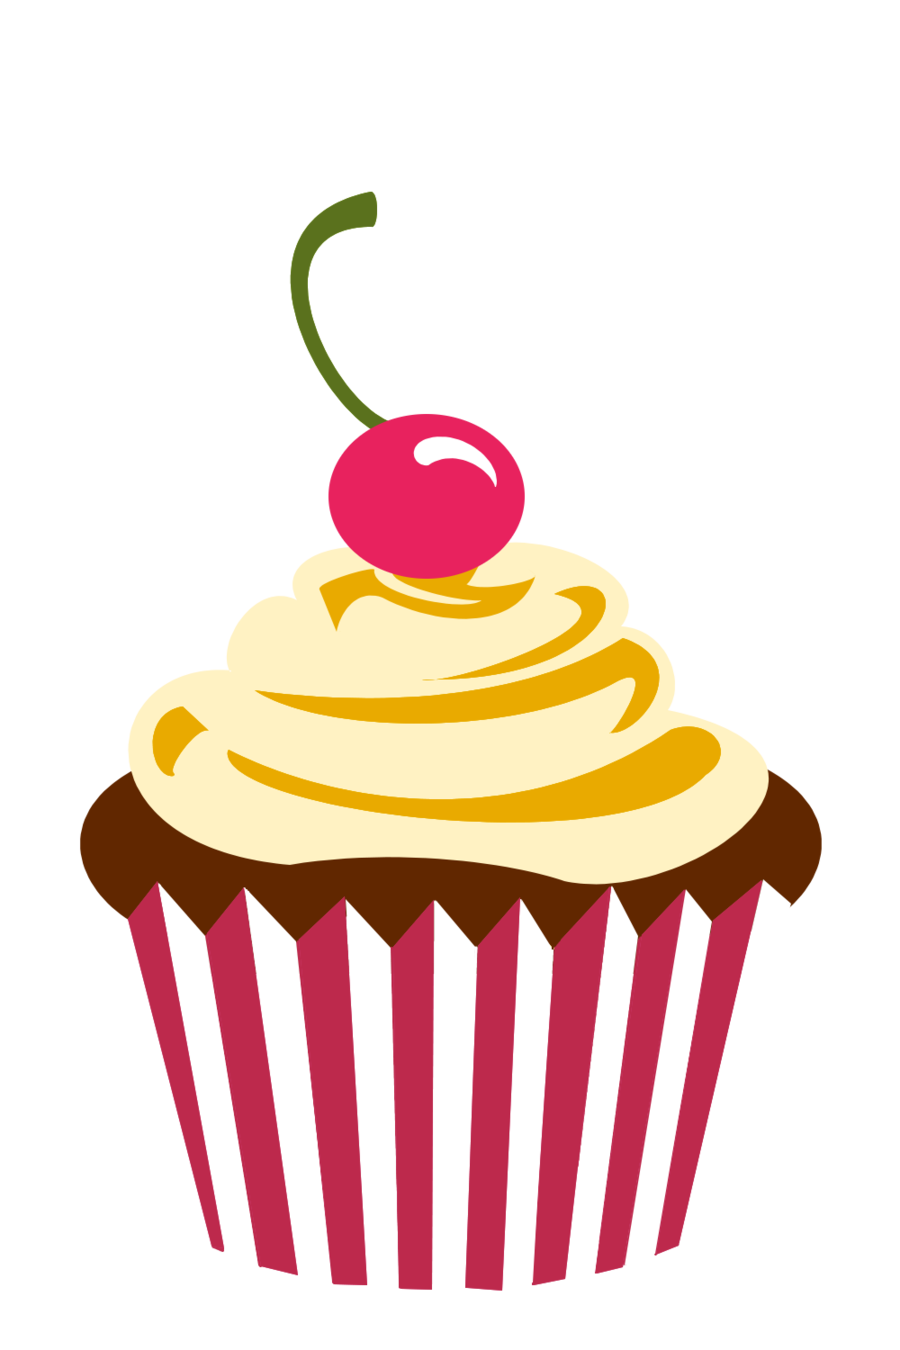 Cake Design Png : Cupcake Logo Png Cherry chocolate cupcake by Party ...